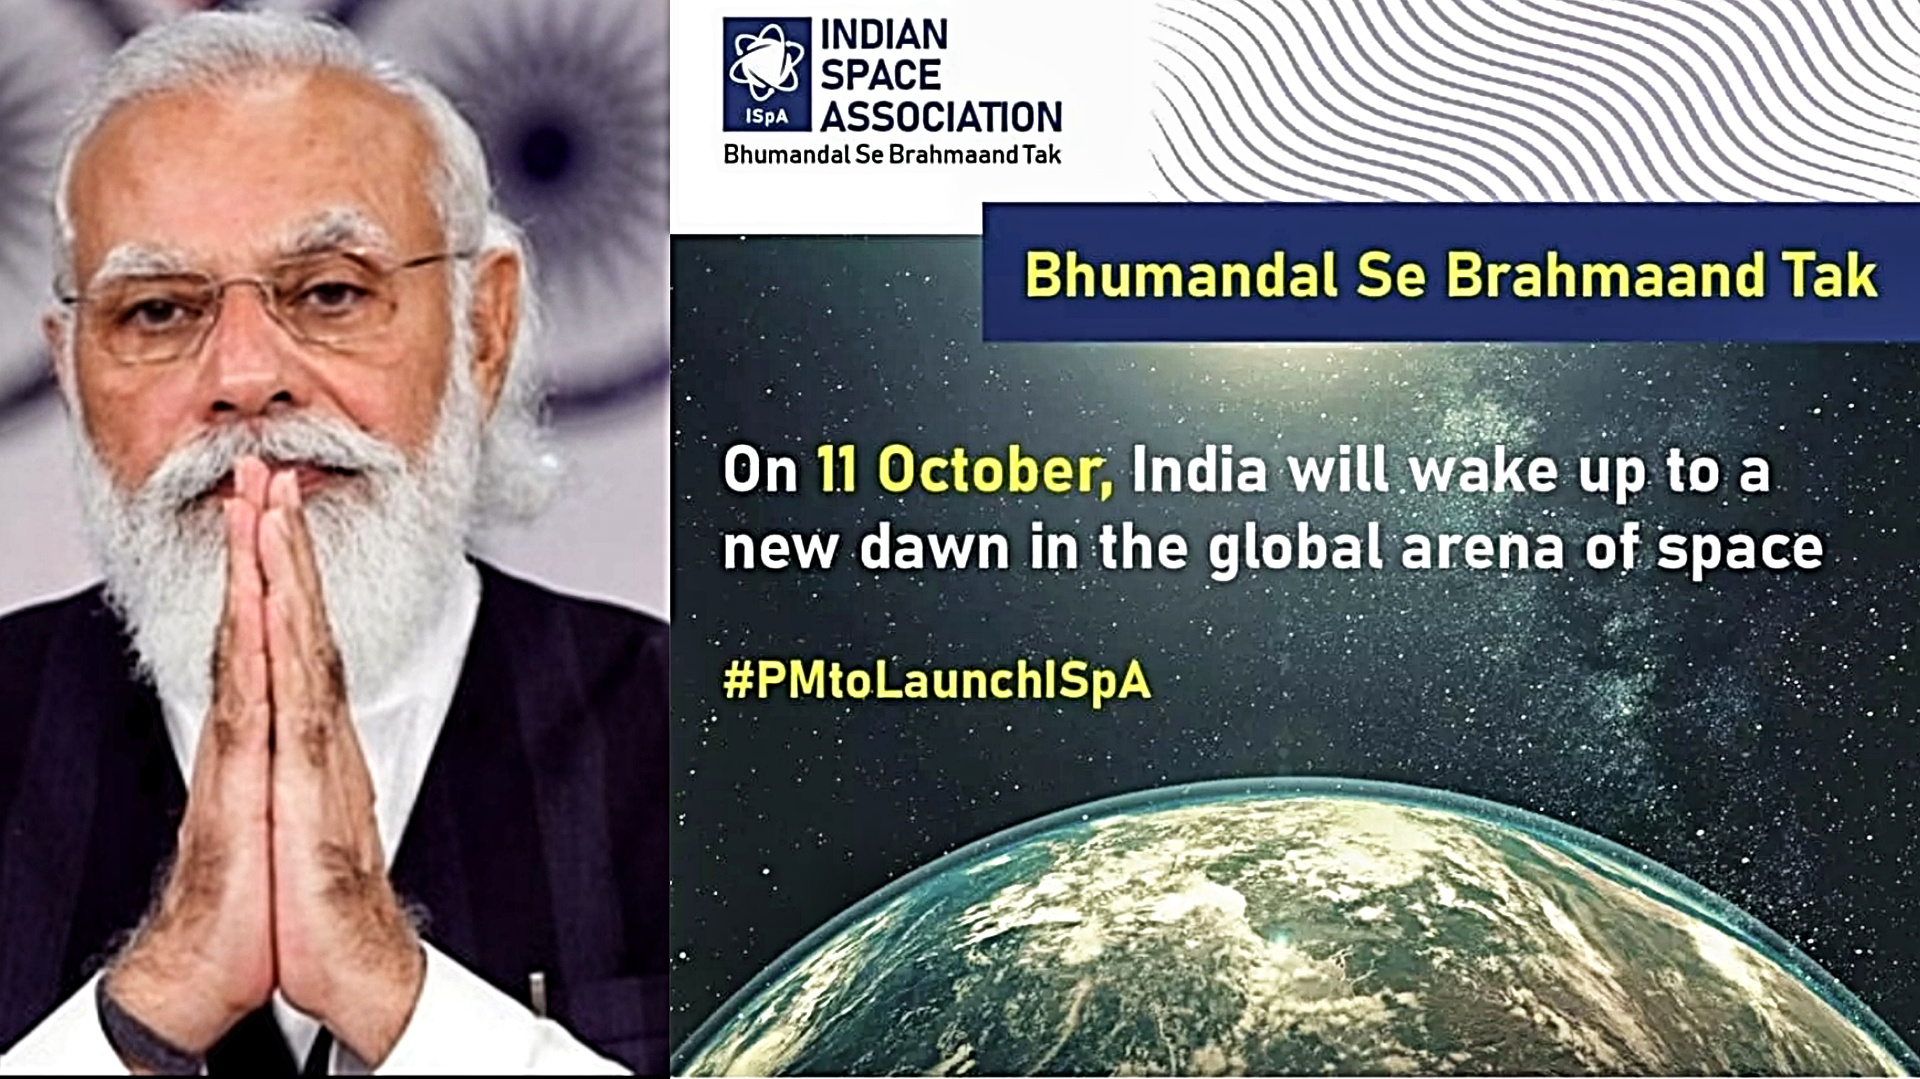 The Inauguration of Indian Space Association